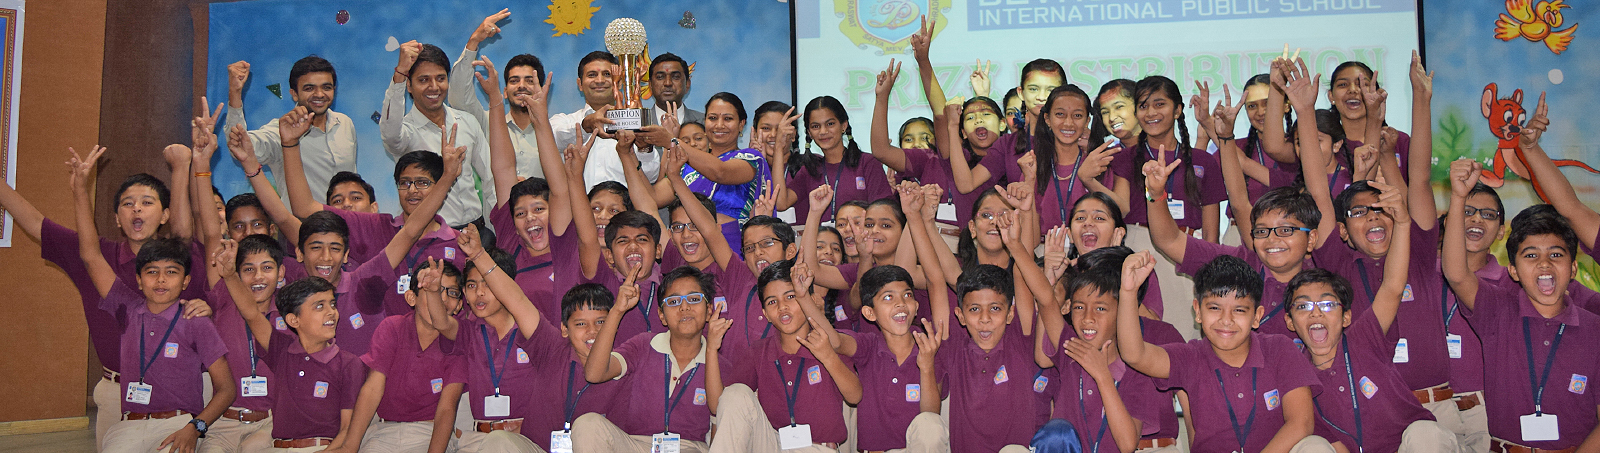 Devasya International Public School